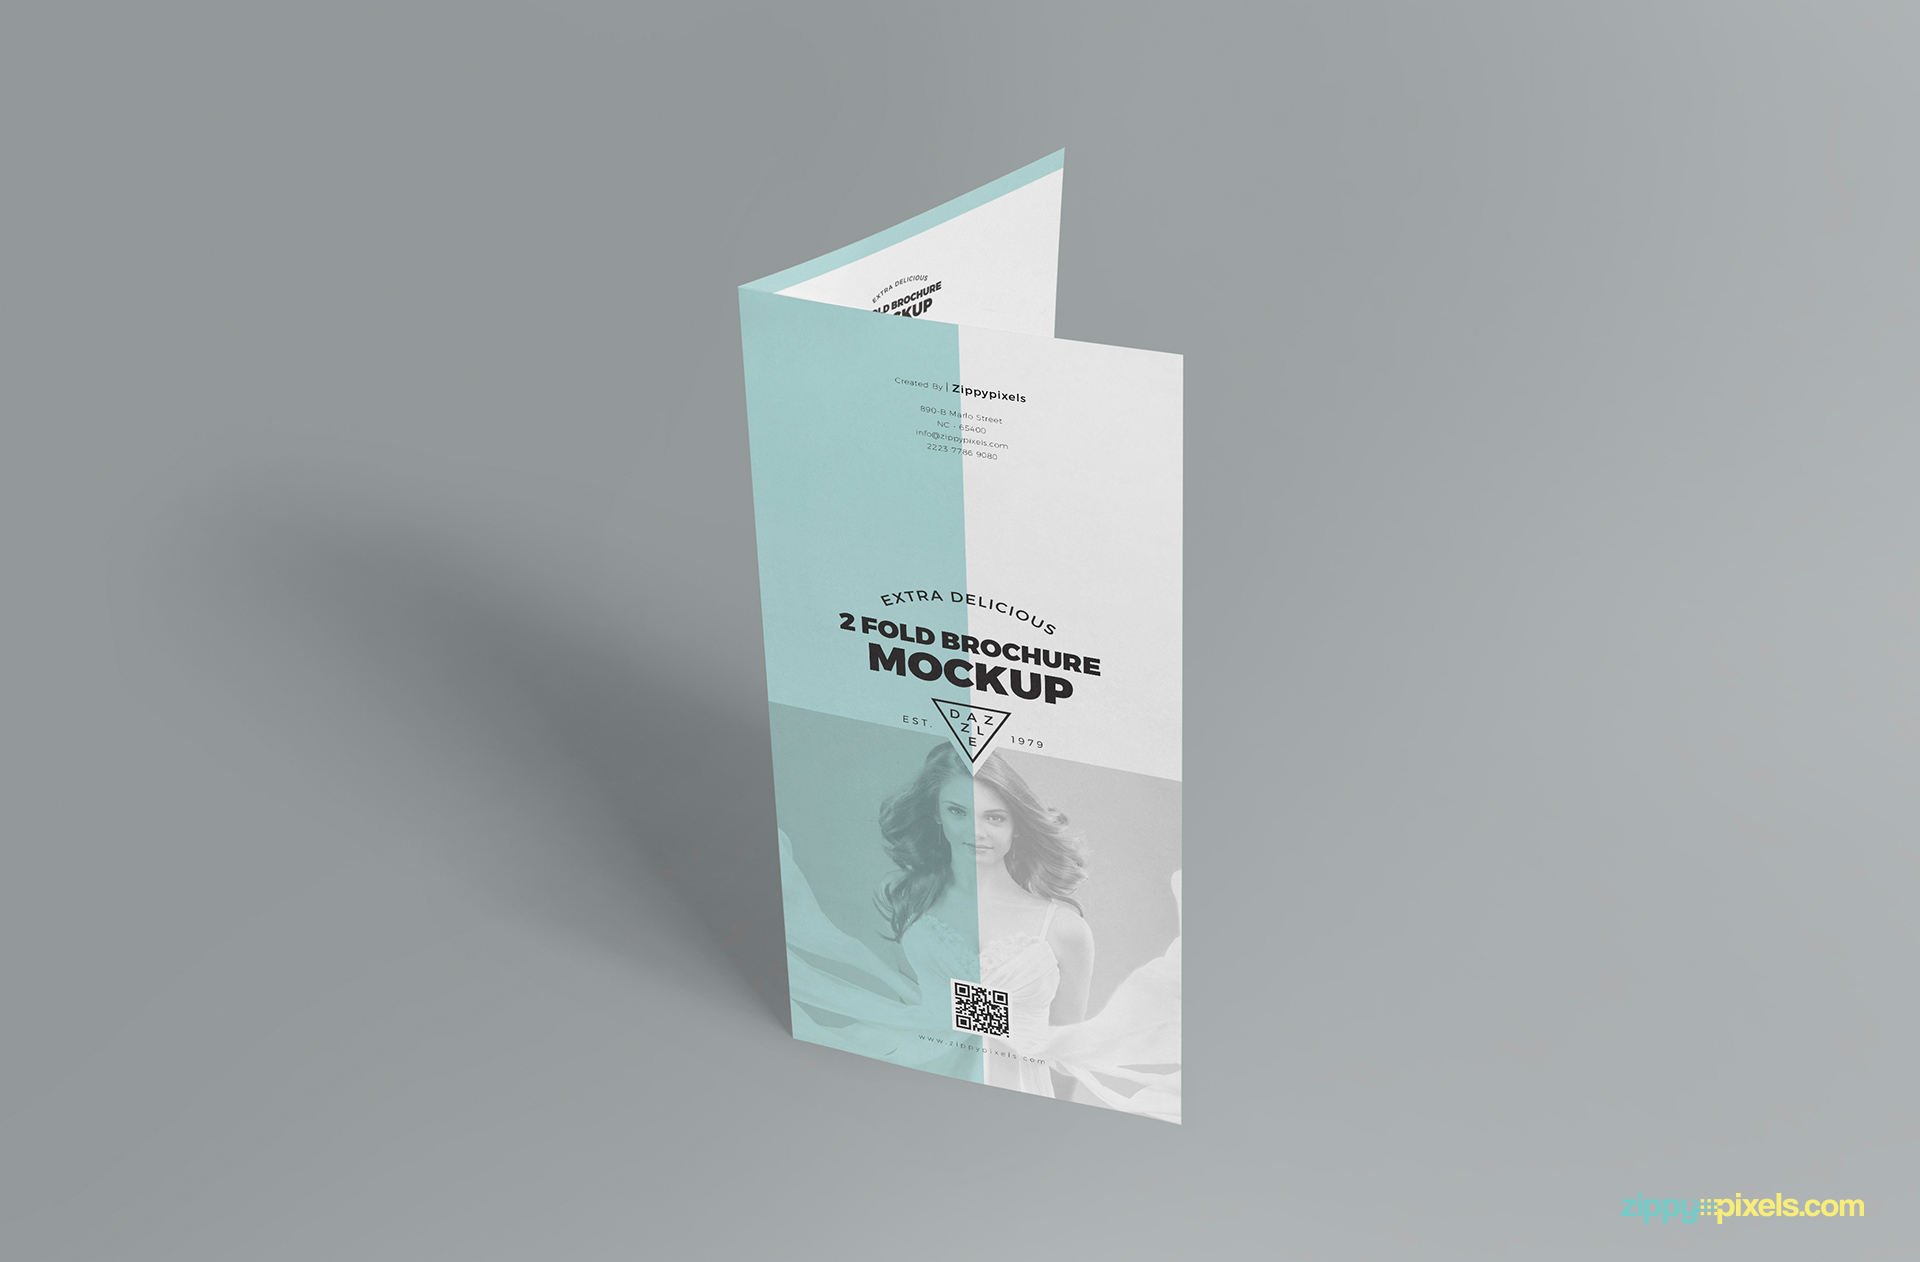 two fold brochure mockup placed vertically